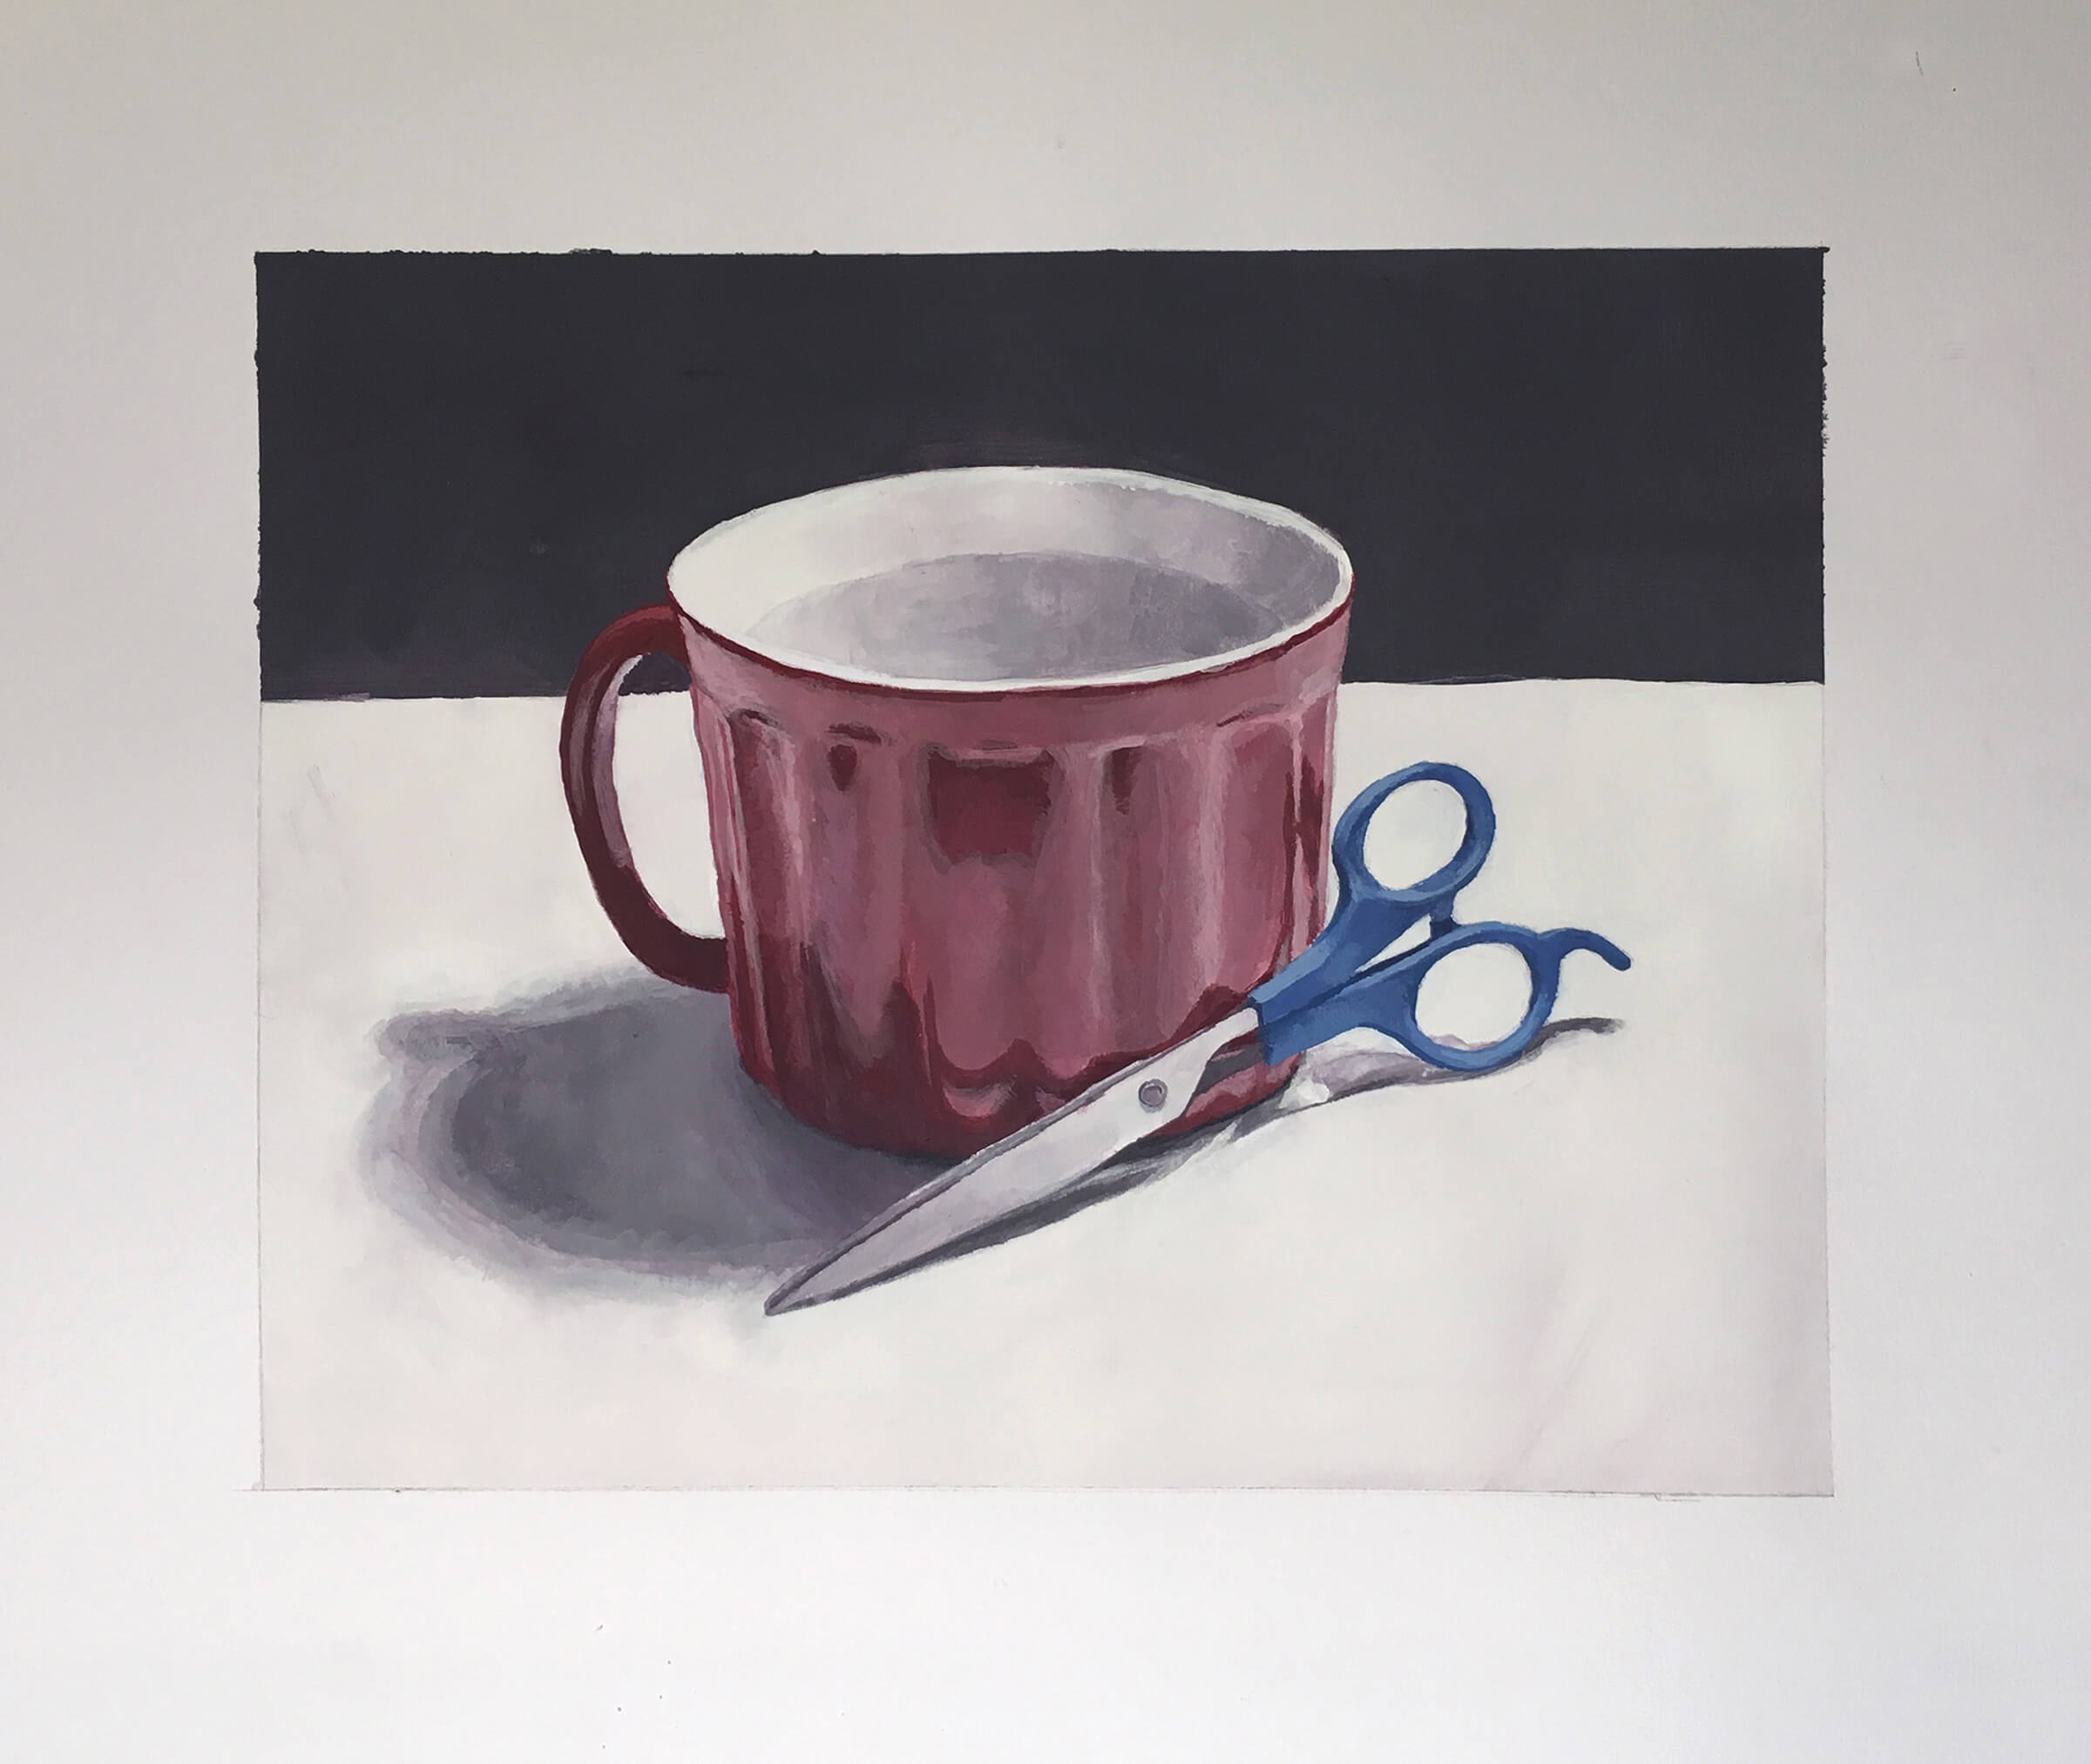 still-life traditional painting of a red mug and blue-handled scissors